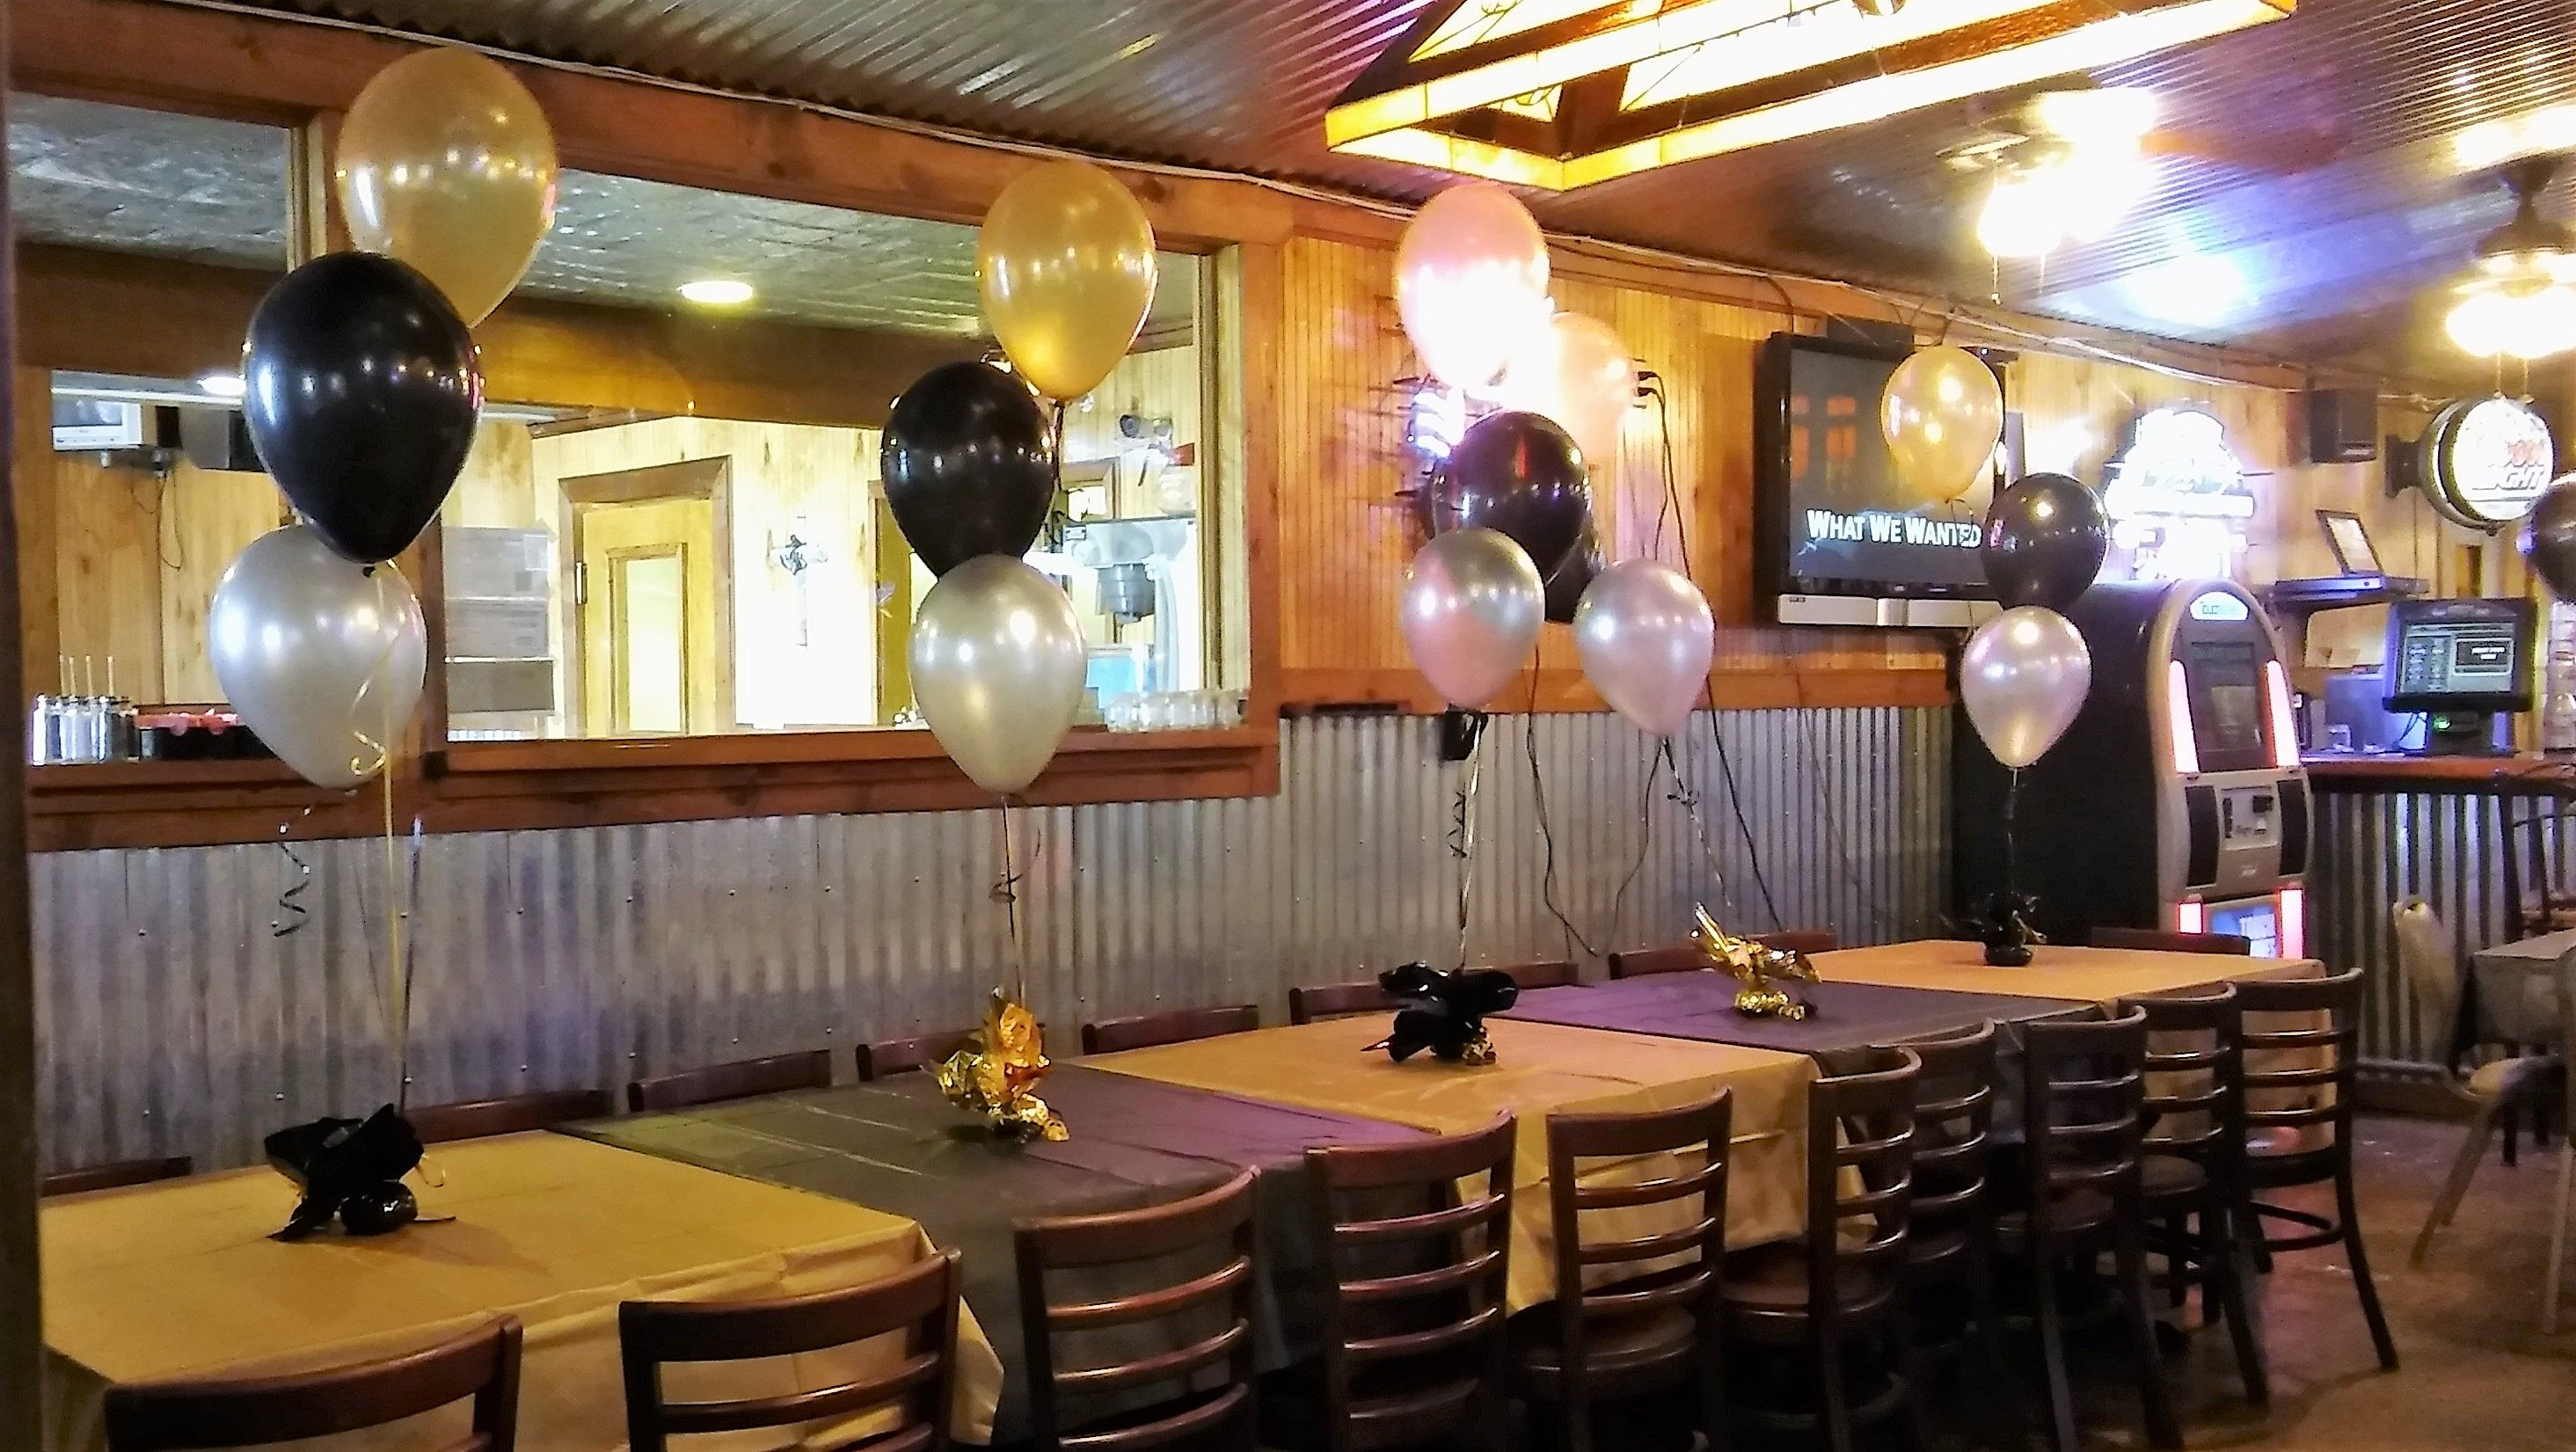 3 Balloon Centerpieces For 30th Birthday Event Gold Black And Silver Color Scheme We Delivered Setup Party Rentals PJs Rental Images